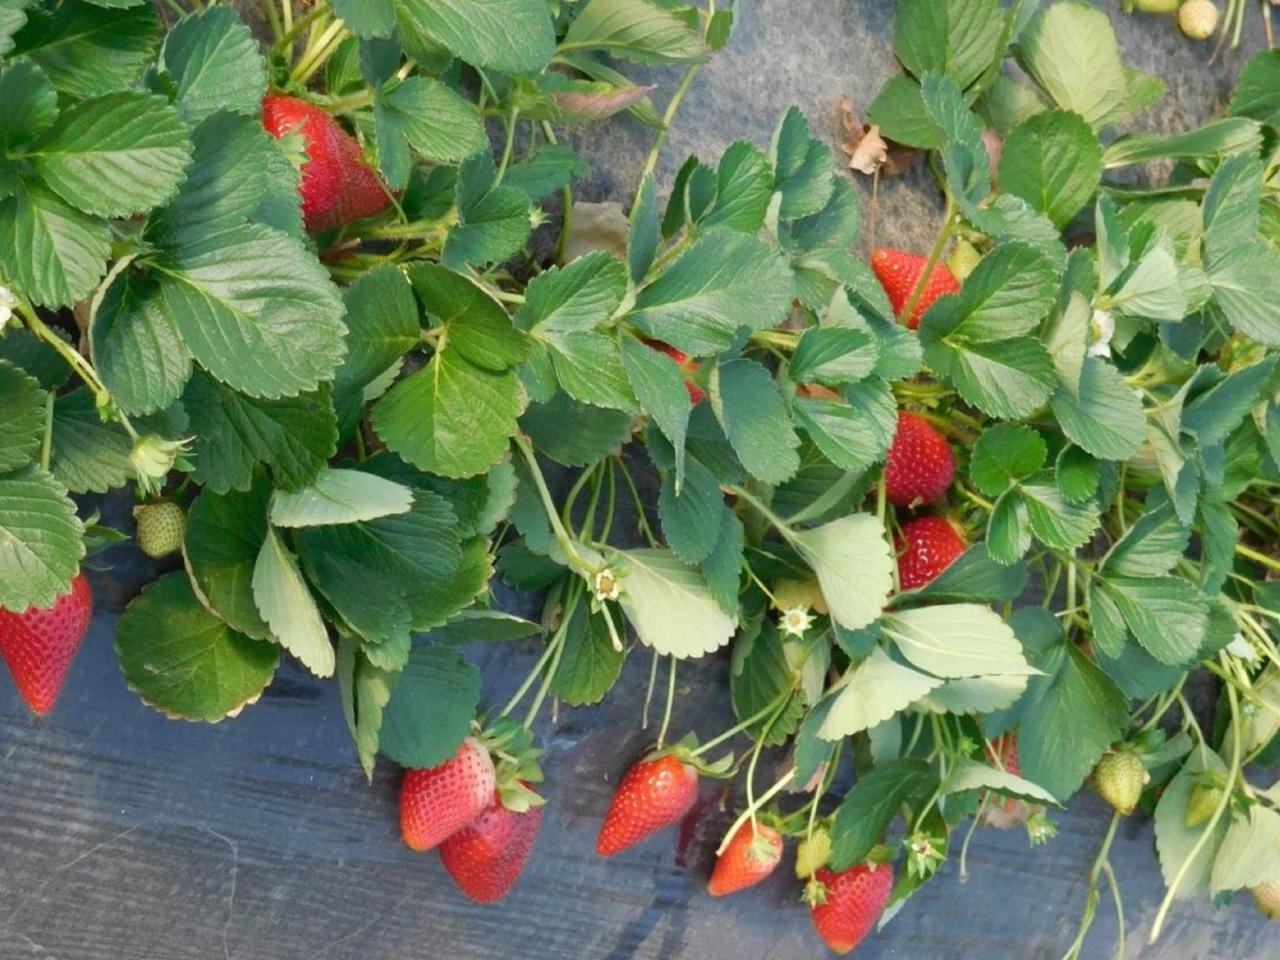 Fragola Parthenope - Plantgest.com